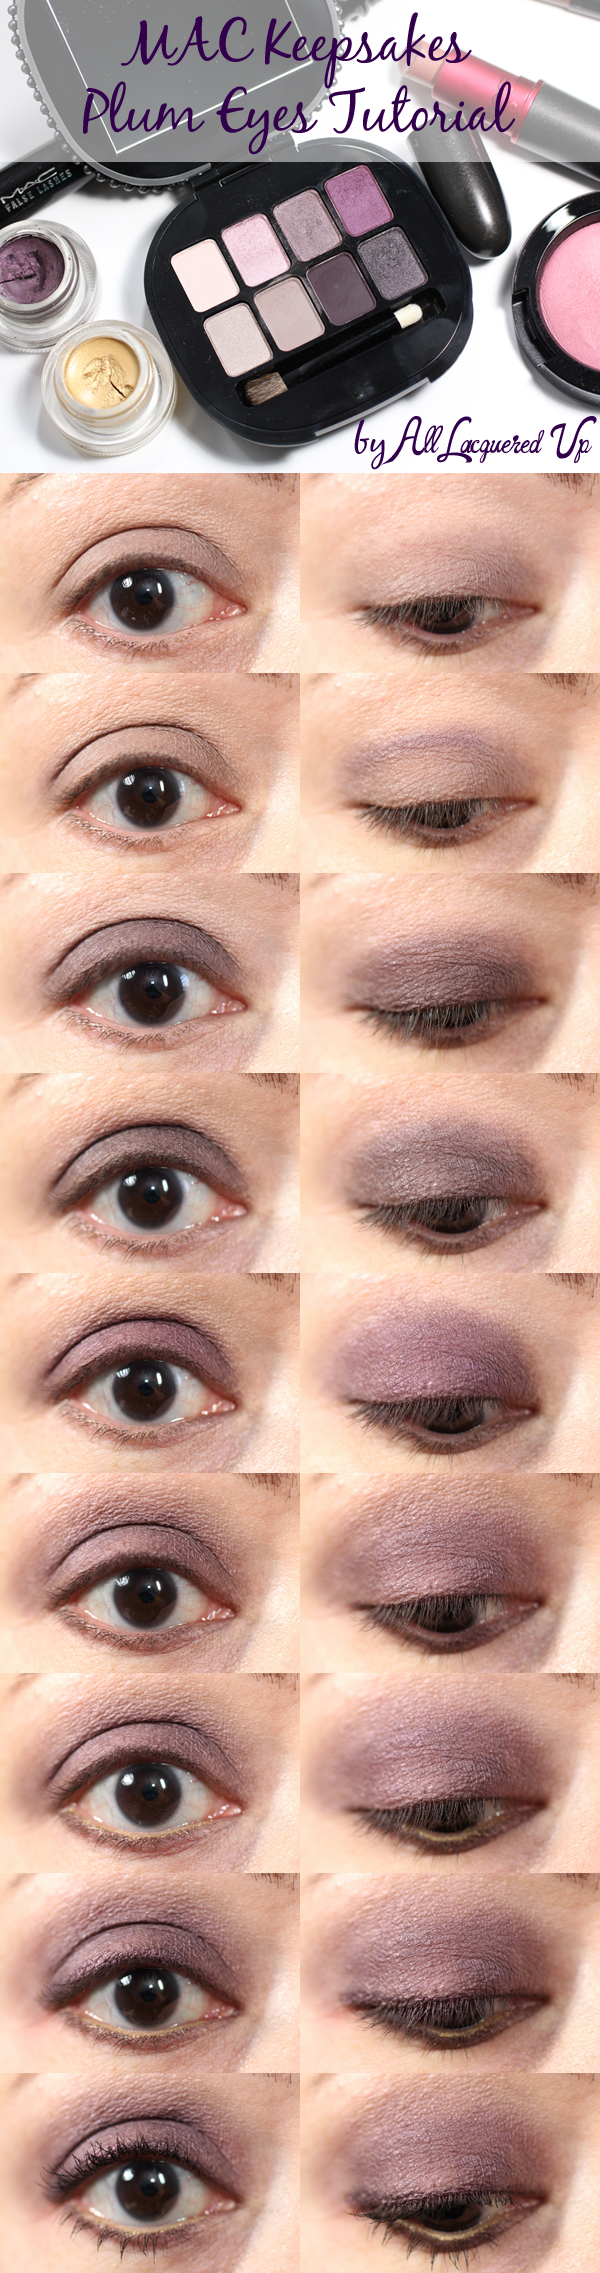 MAC Holiday Keepsakes Plum Eyes Tutorial via @alllacqueredup